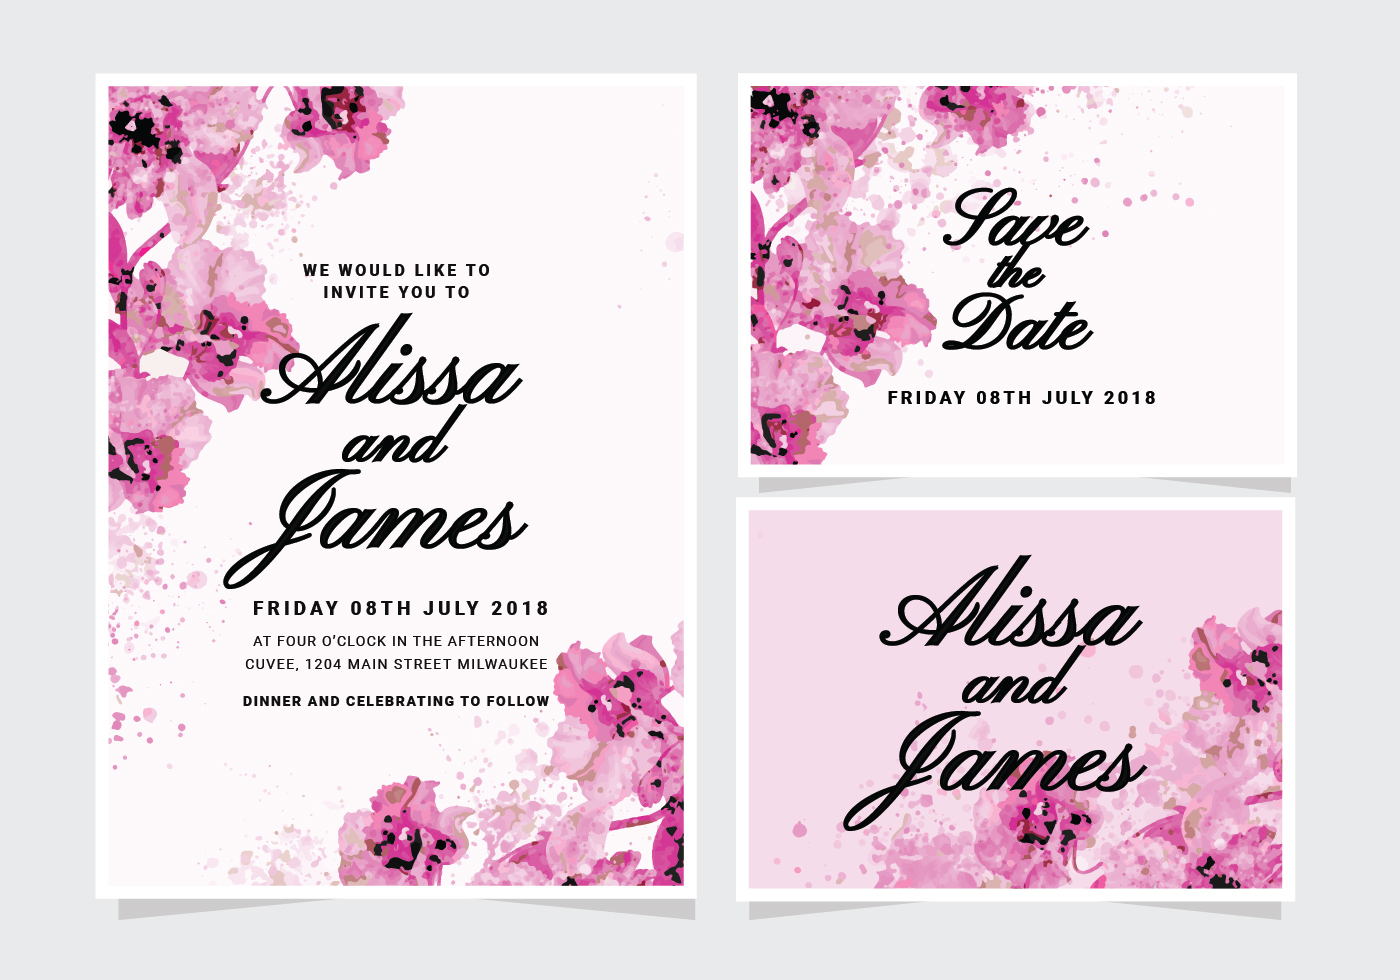 Floral Invitation Free Vector Art 12595 Free Downloads